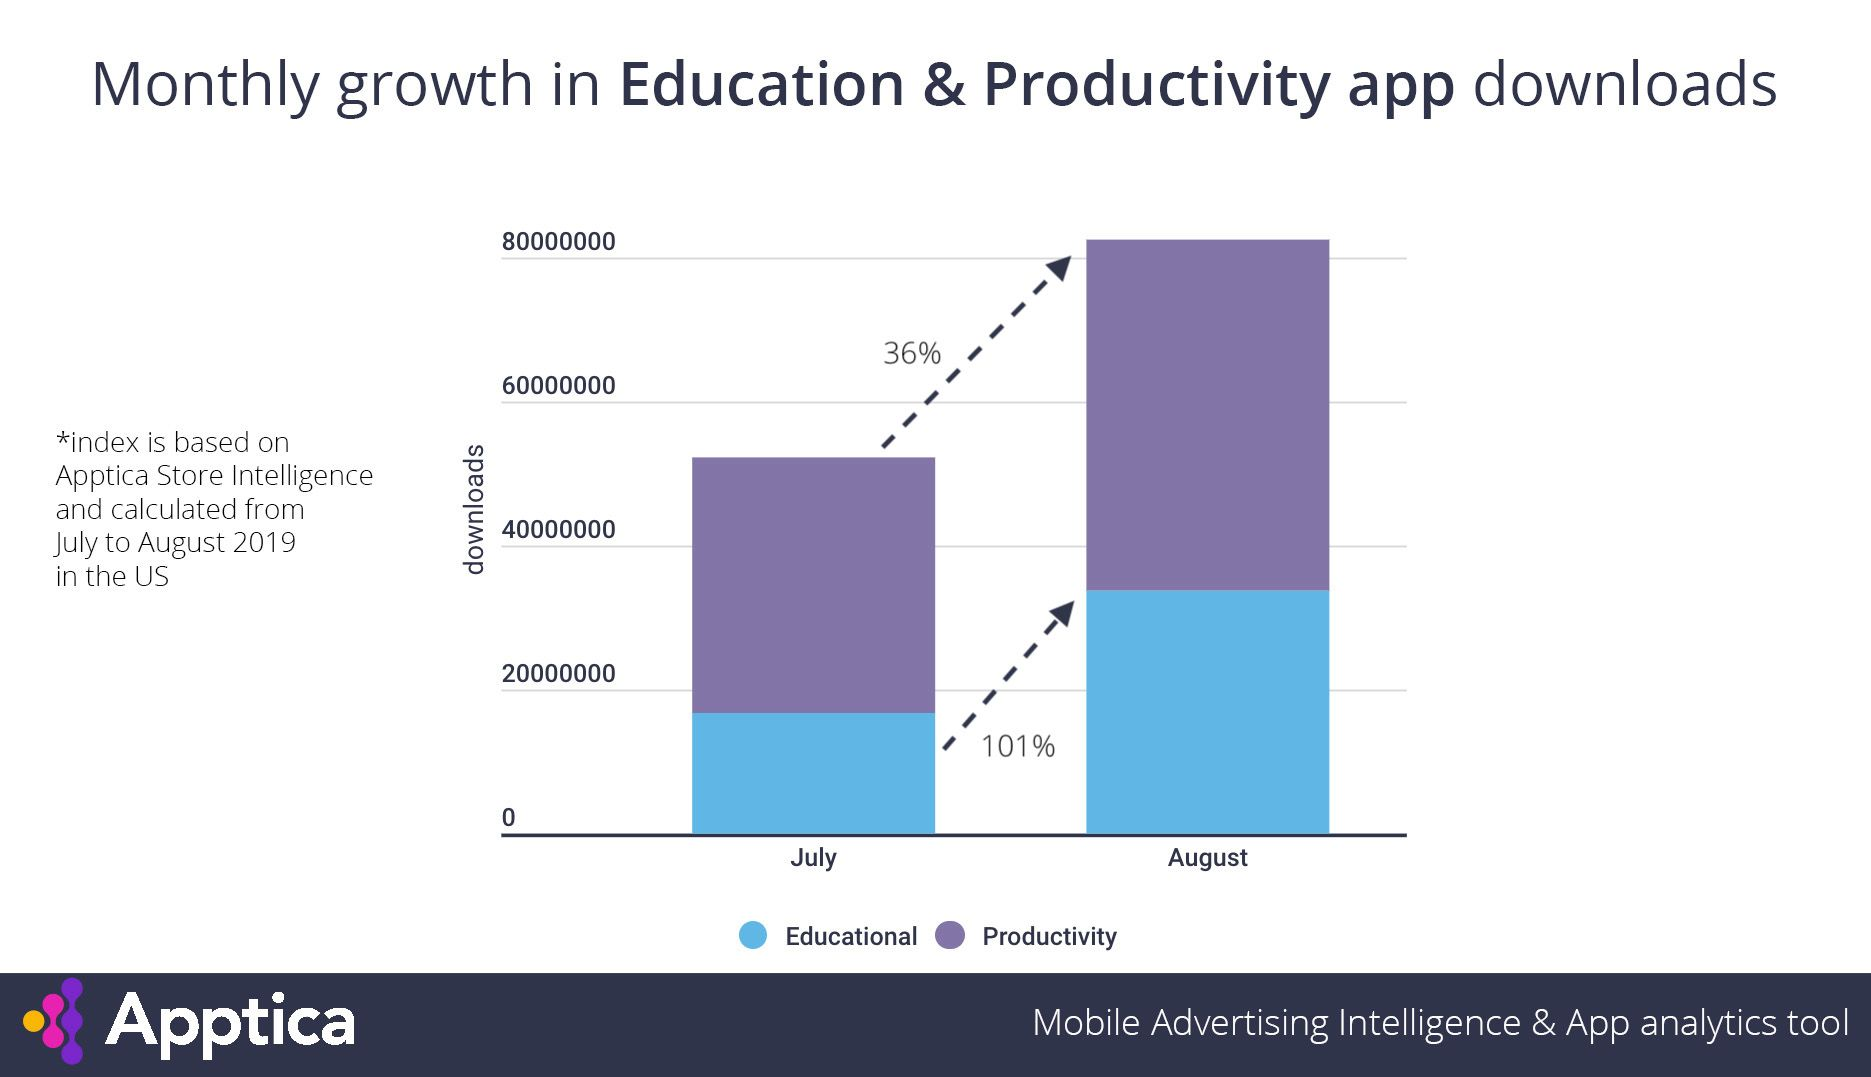 Education app downloads in the US